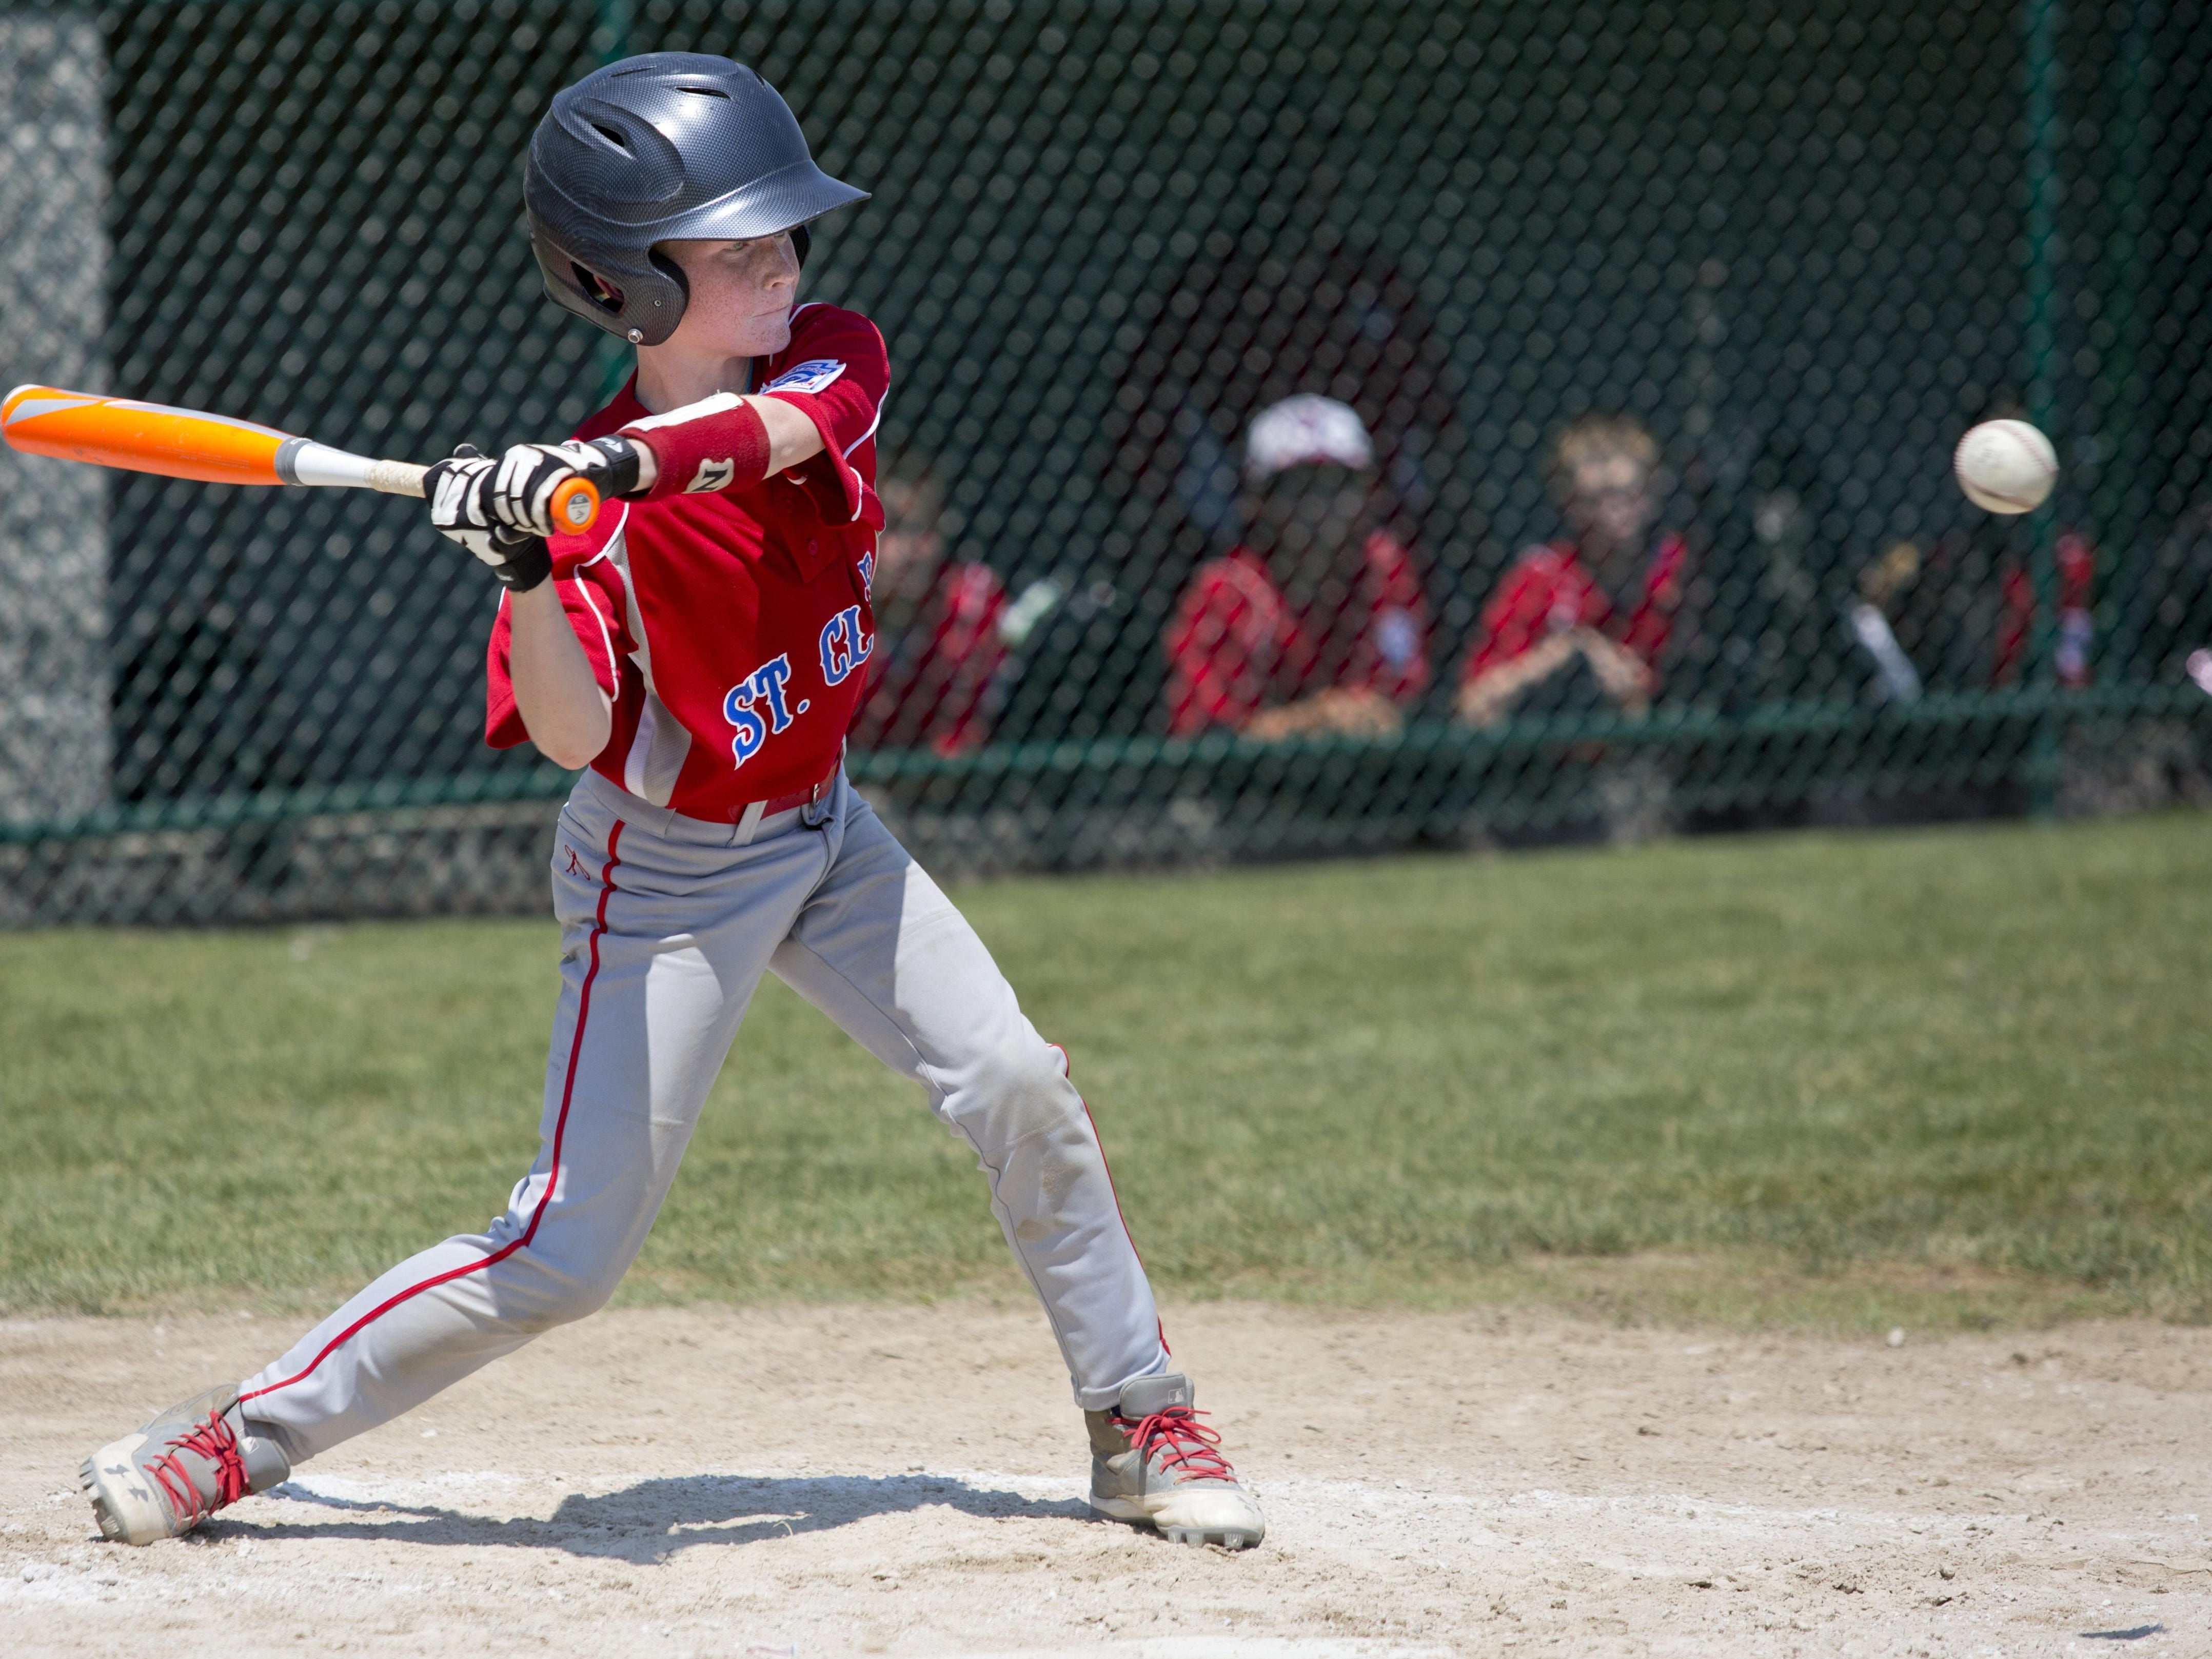 Carter Boullard gets a hit during a 10-and-under state semifinal baseball game Tuesday, July 28, 2015 in St. Clair.